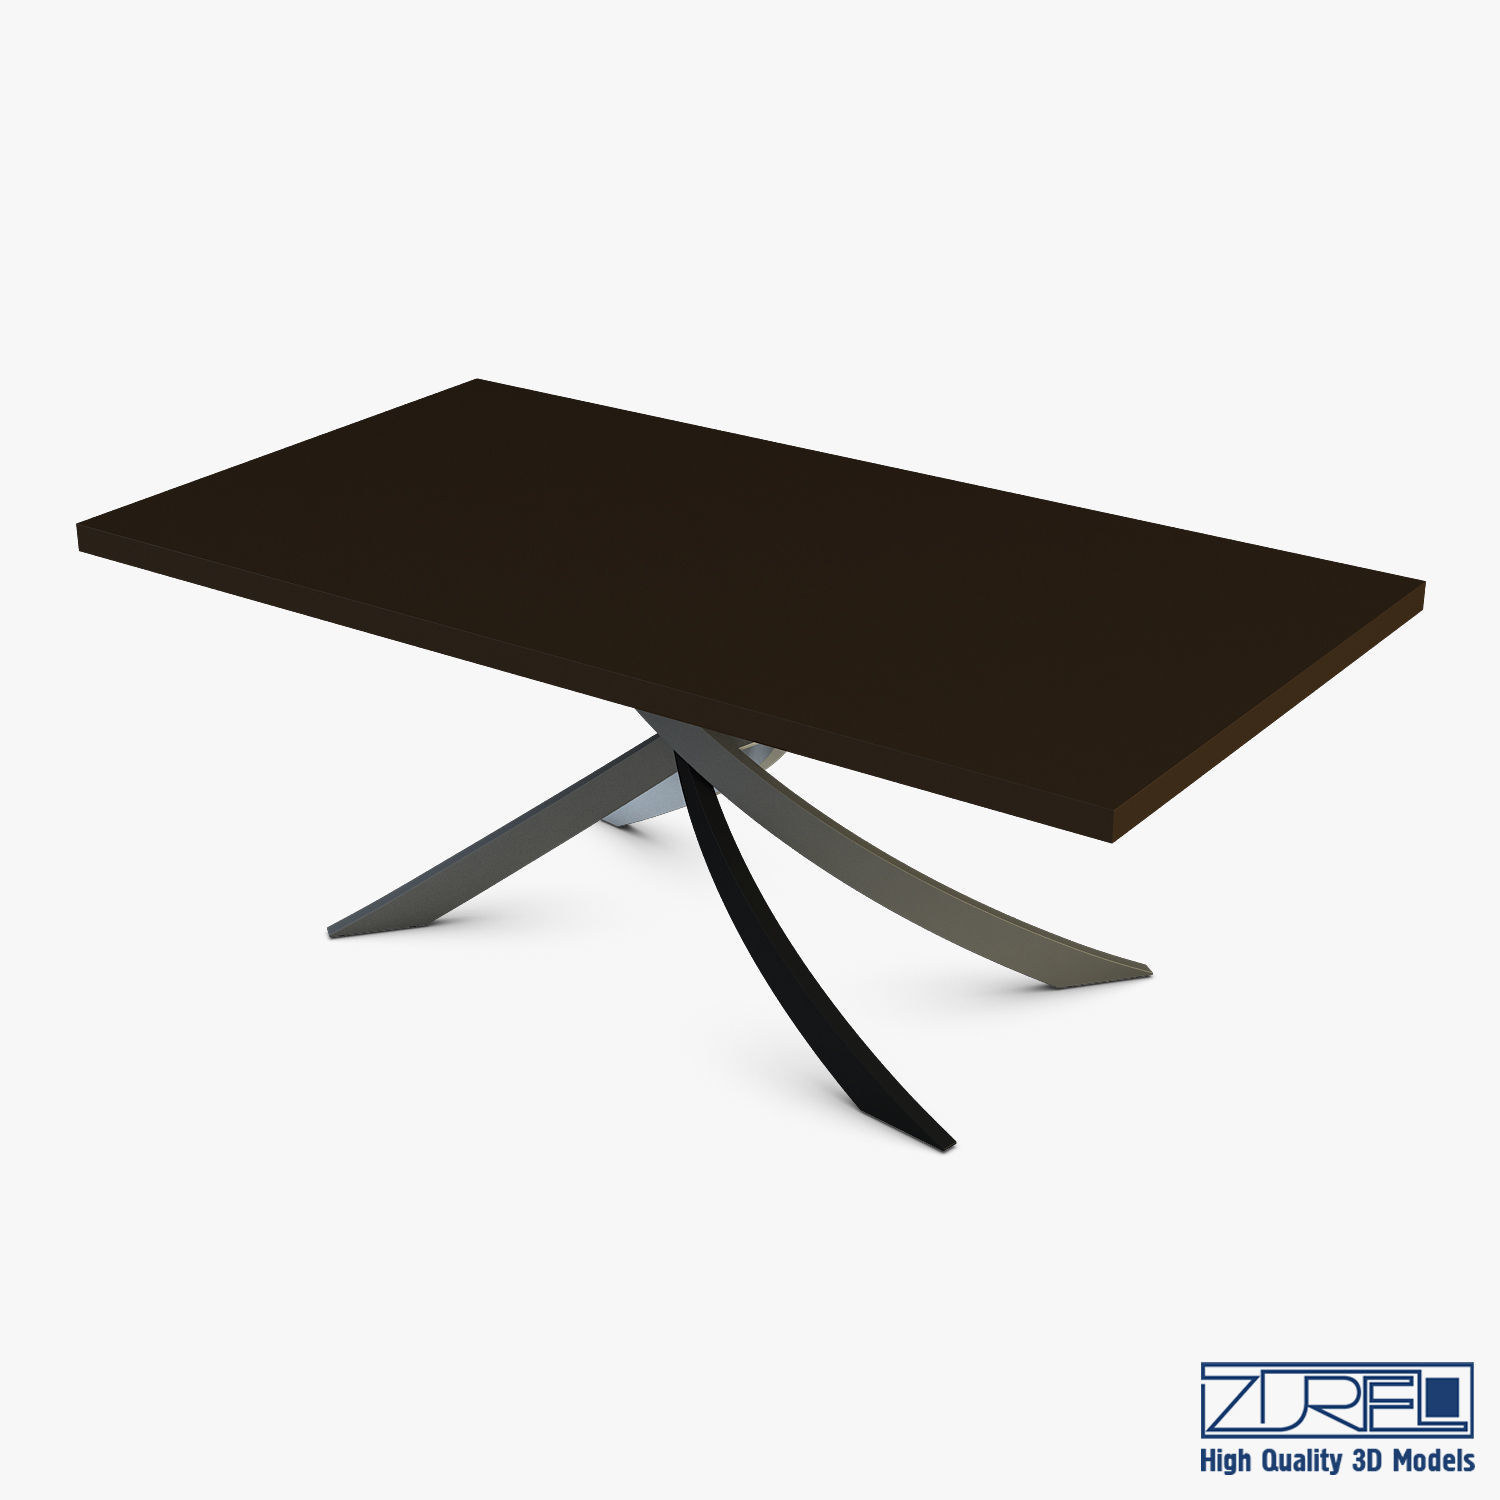 Bontempi Artistico Fixed Dining Table 3D Model Max Obj Fbx Within Most Popular Yaqub 39'' Dining Tables (View 15 of 15)